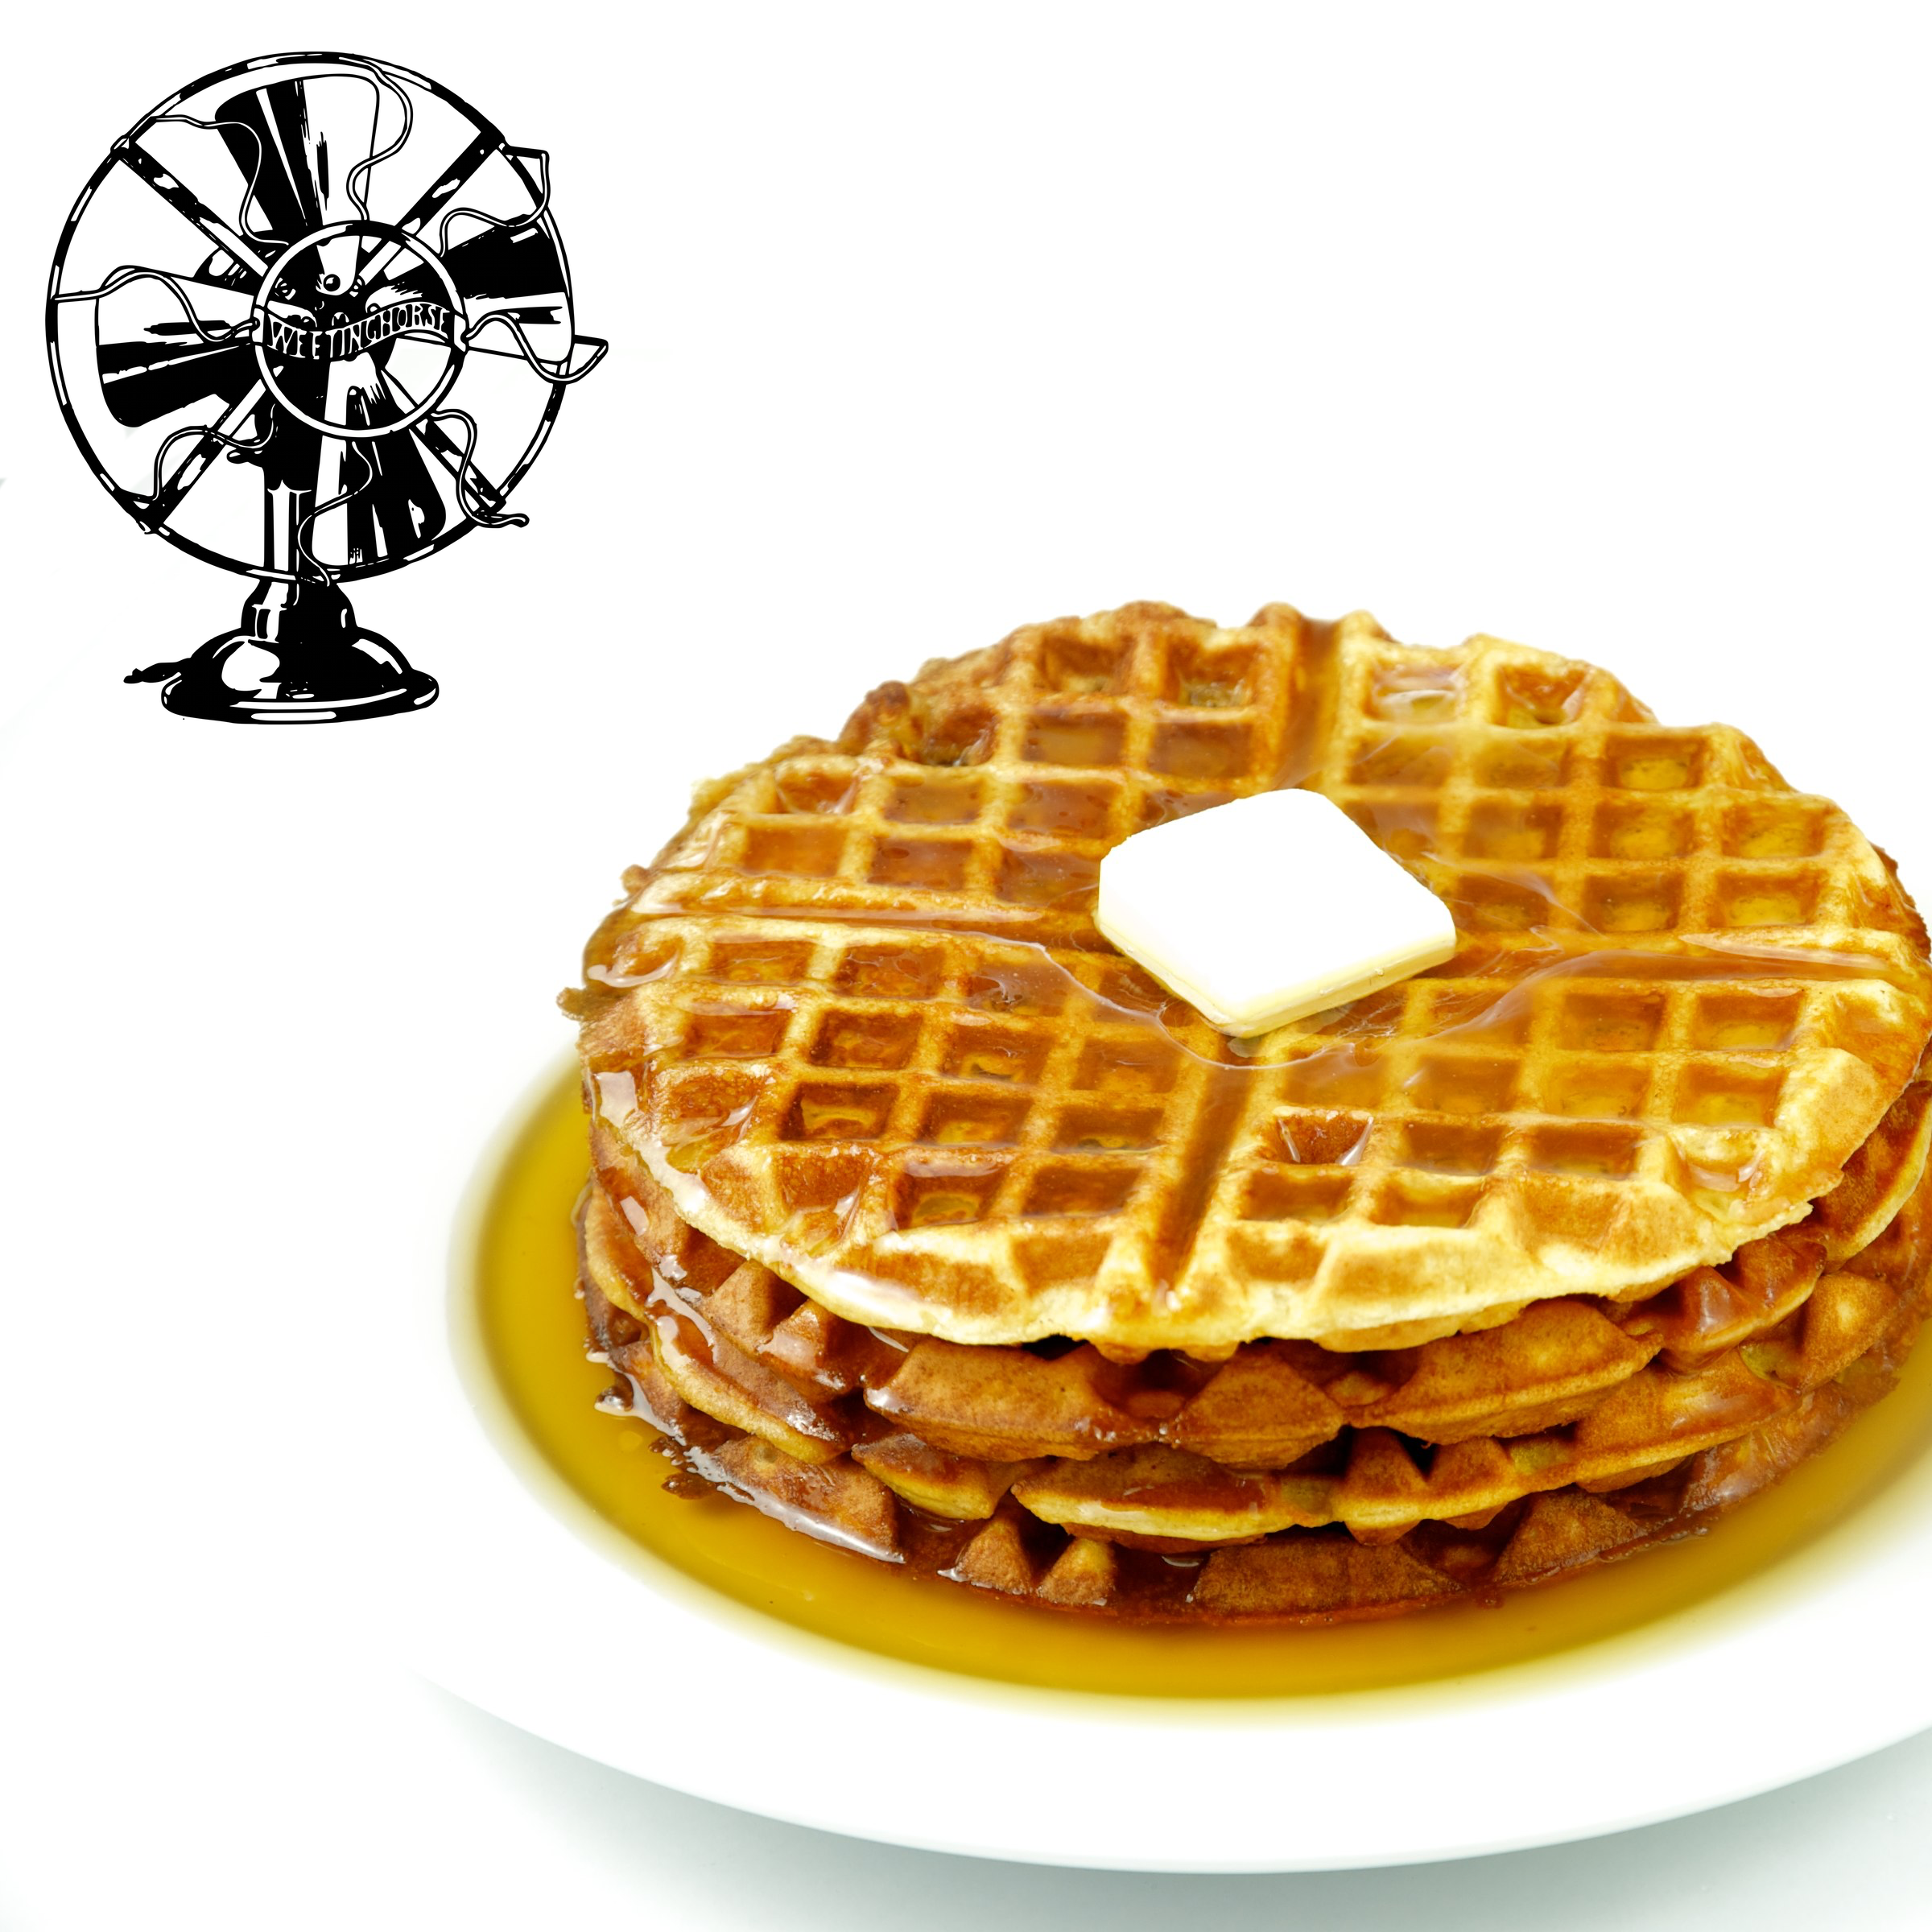 Episode 9's cover: a stack of waffles with butter and syrup.